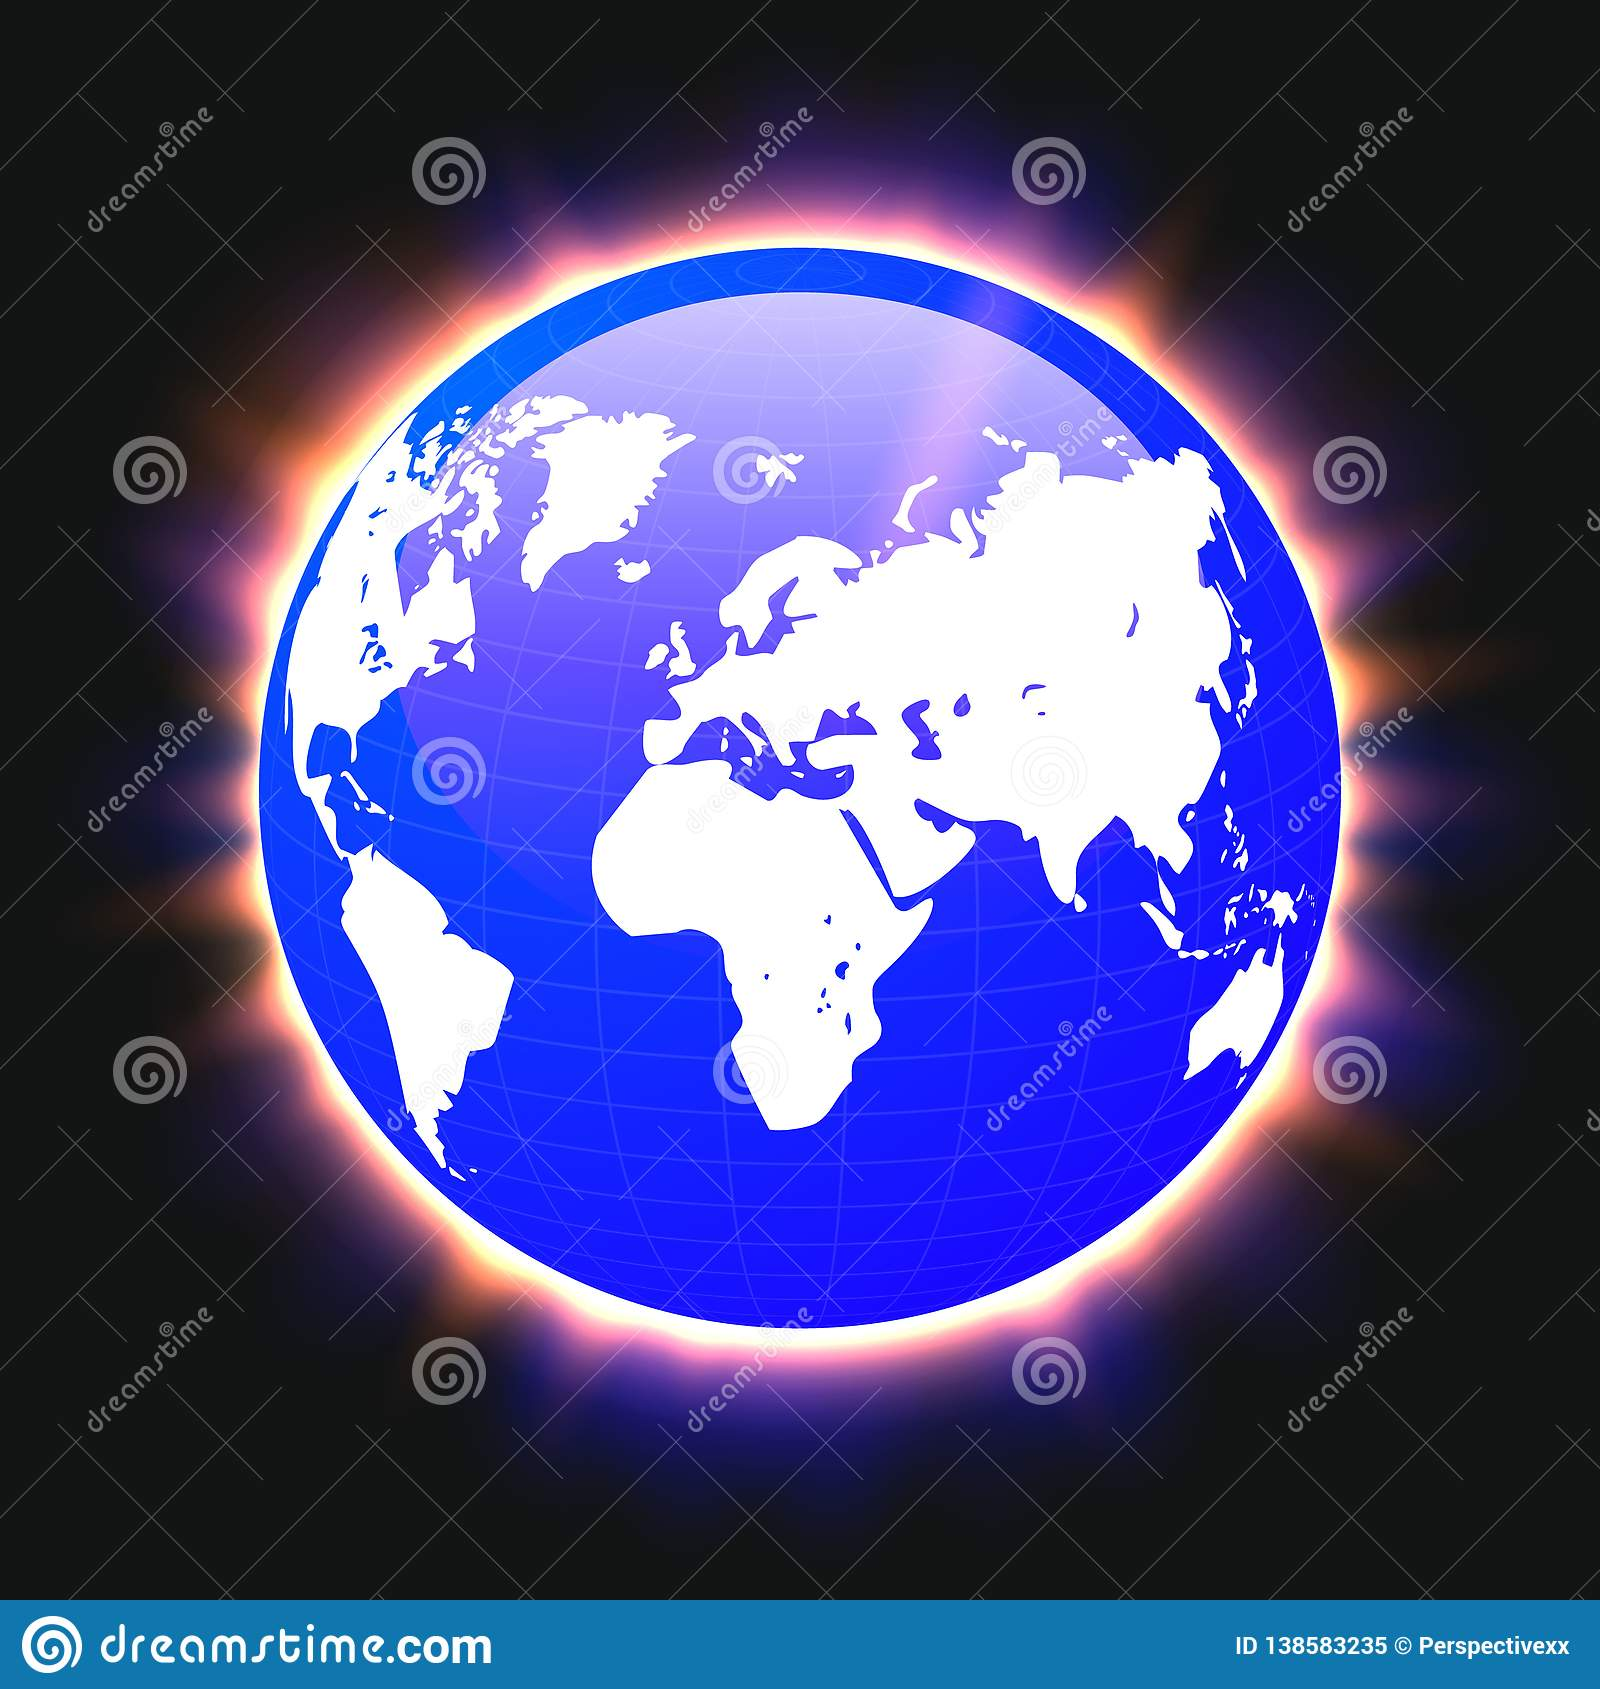 Blue planet earth and world map colorful light beams, vector